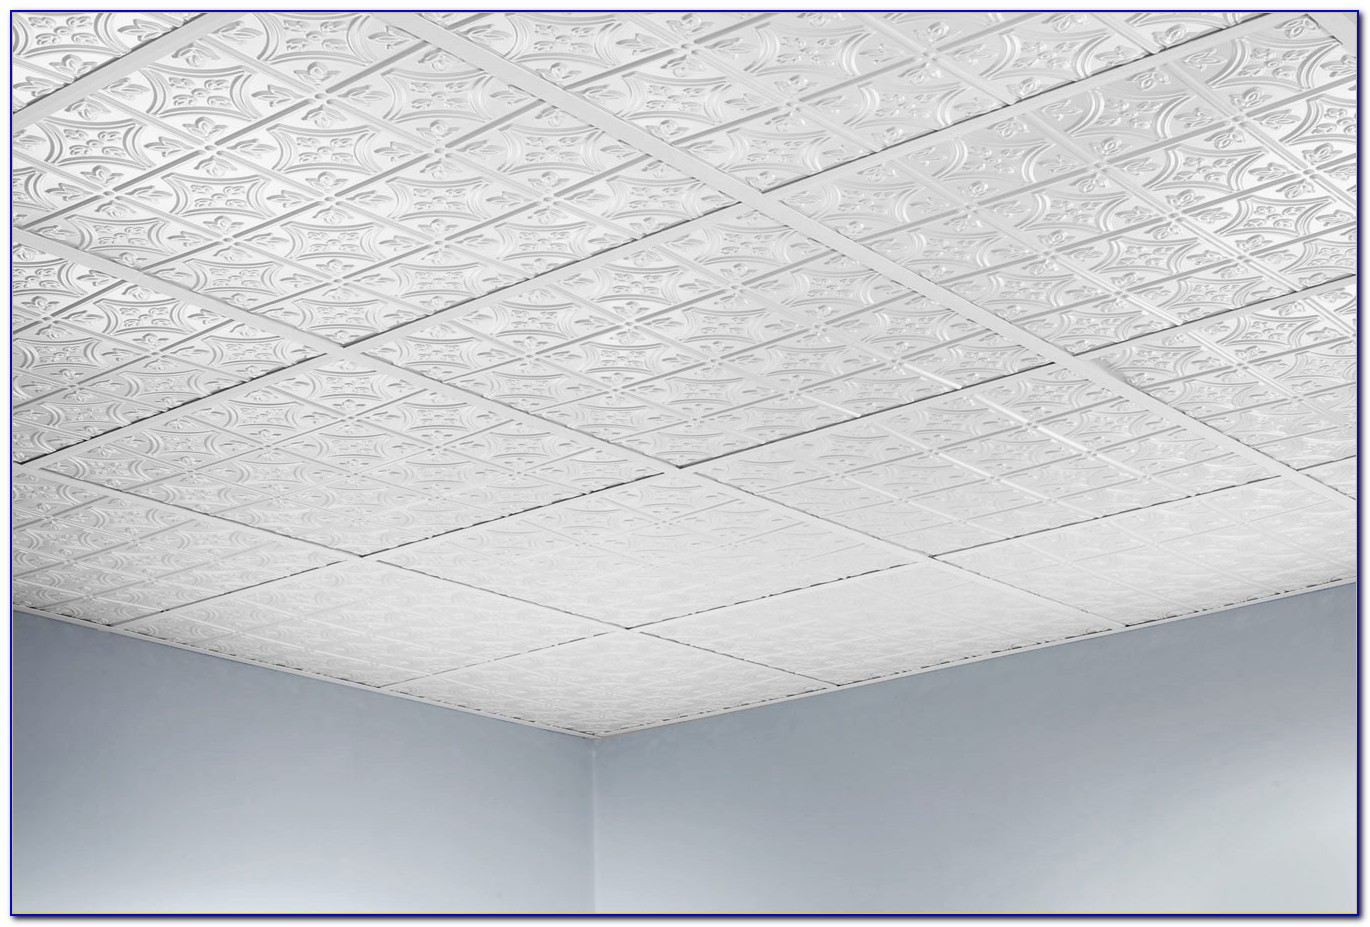 Armstrong Suspended Ceiling Tile Installation Video